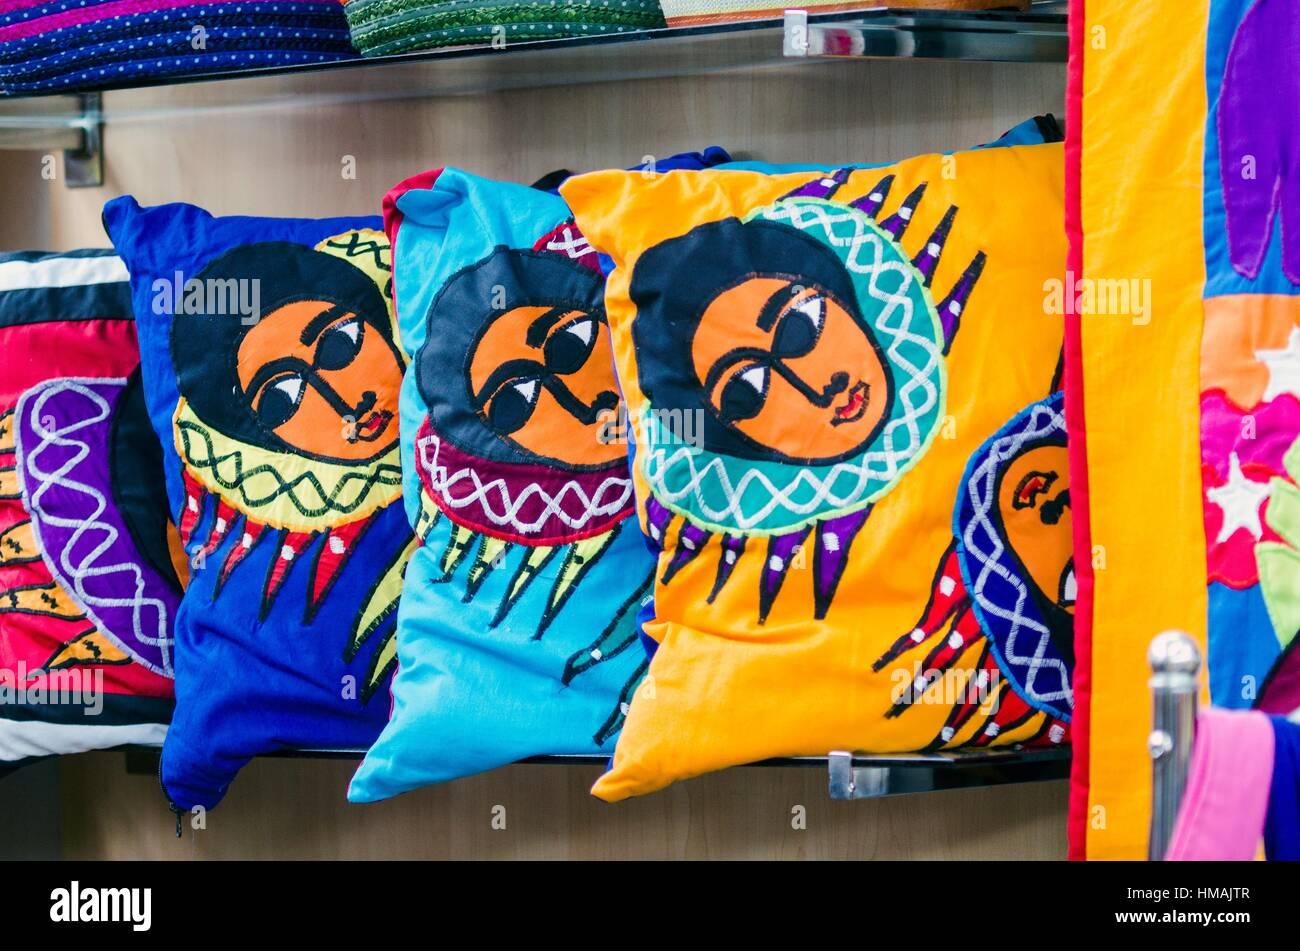 Cushions with traditional religious motif, Craft shop, Addis Ababa International Airport, Ethiopia - Stock Image